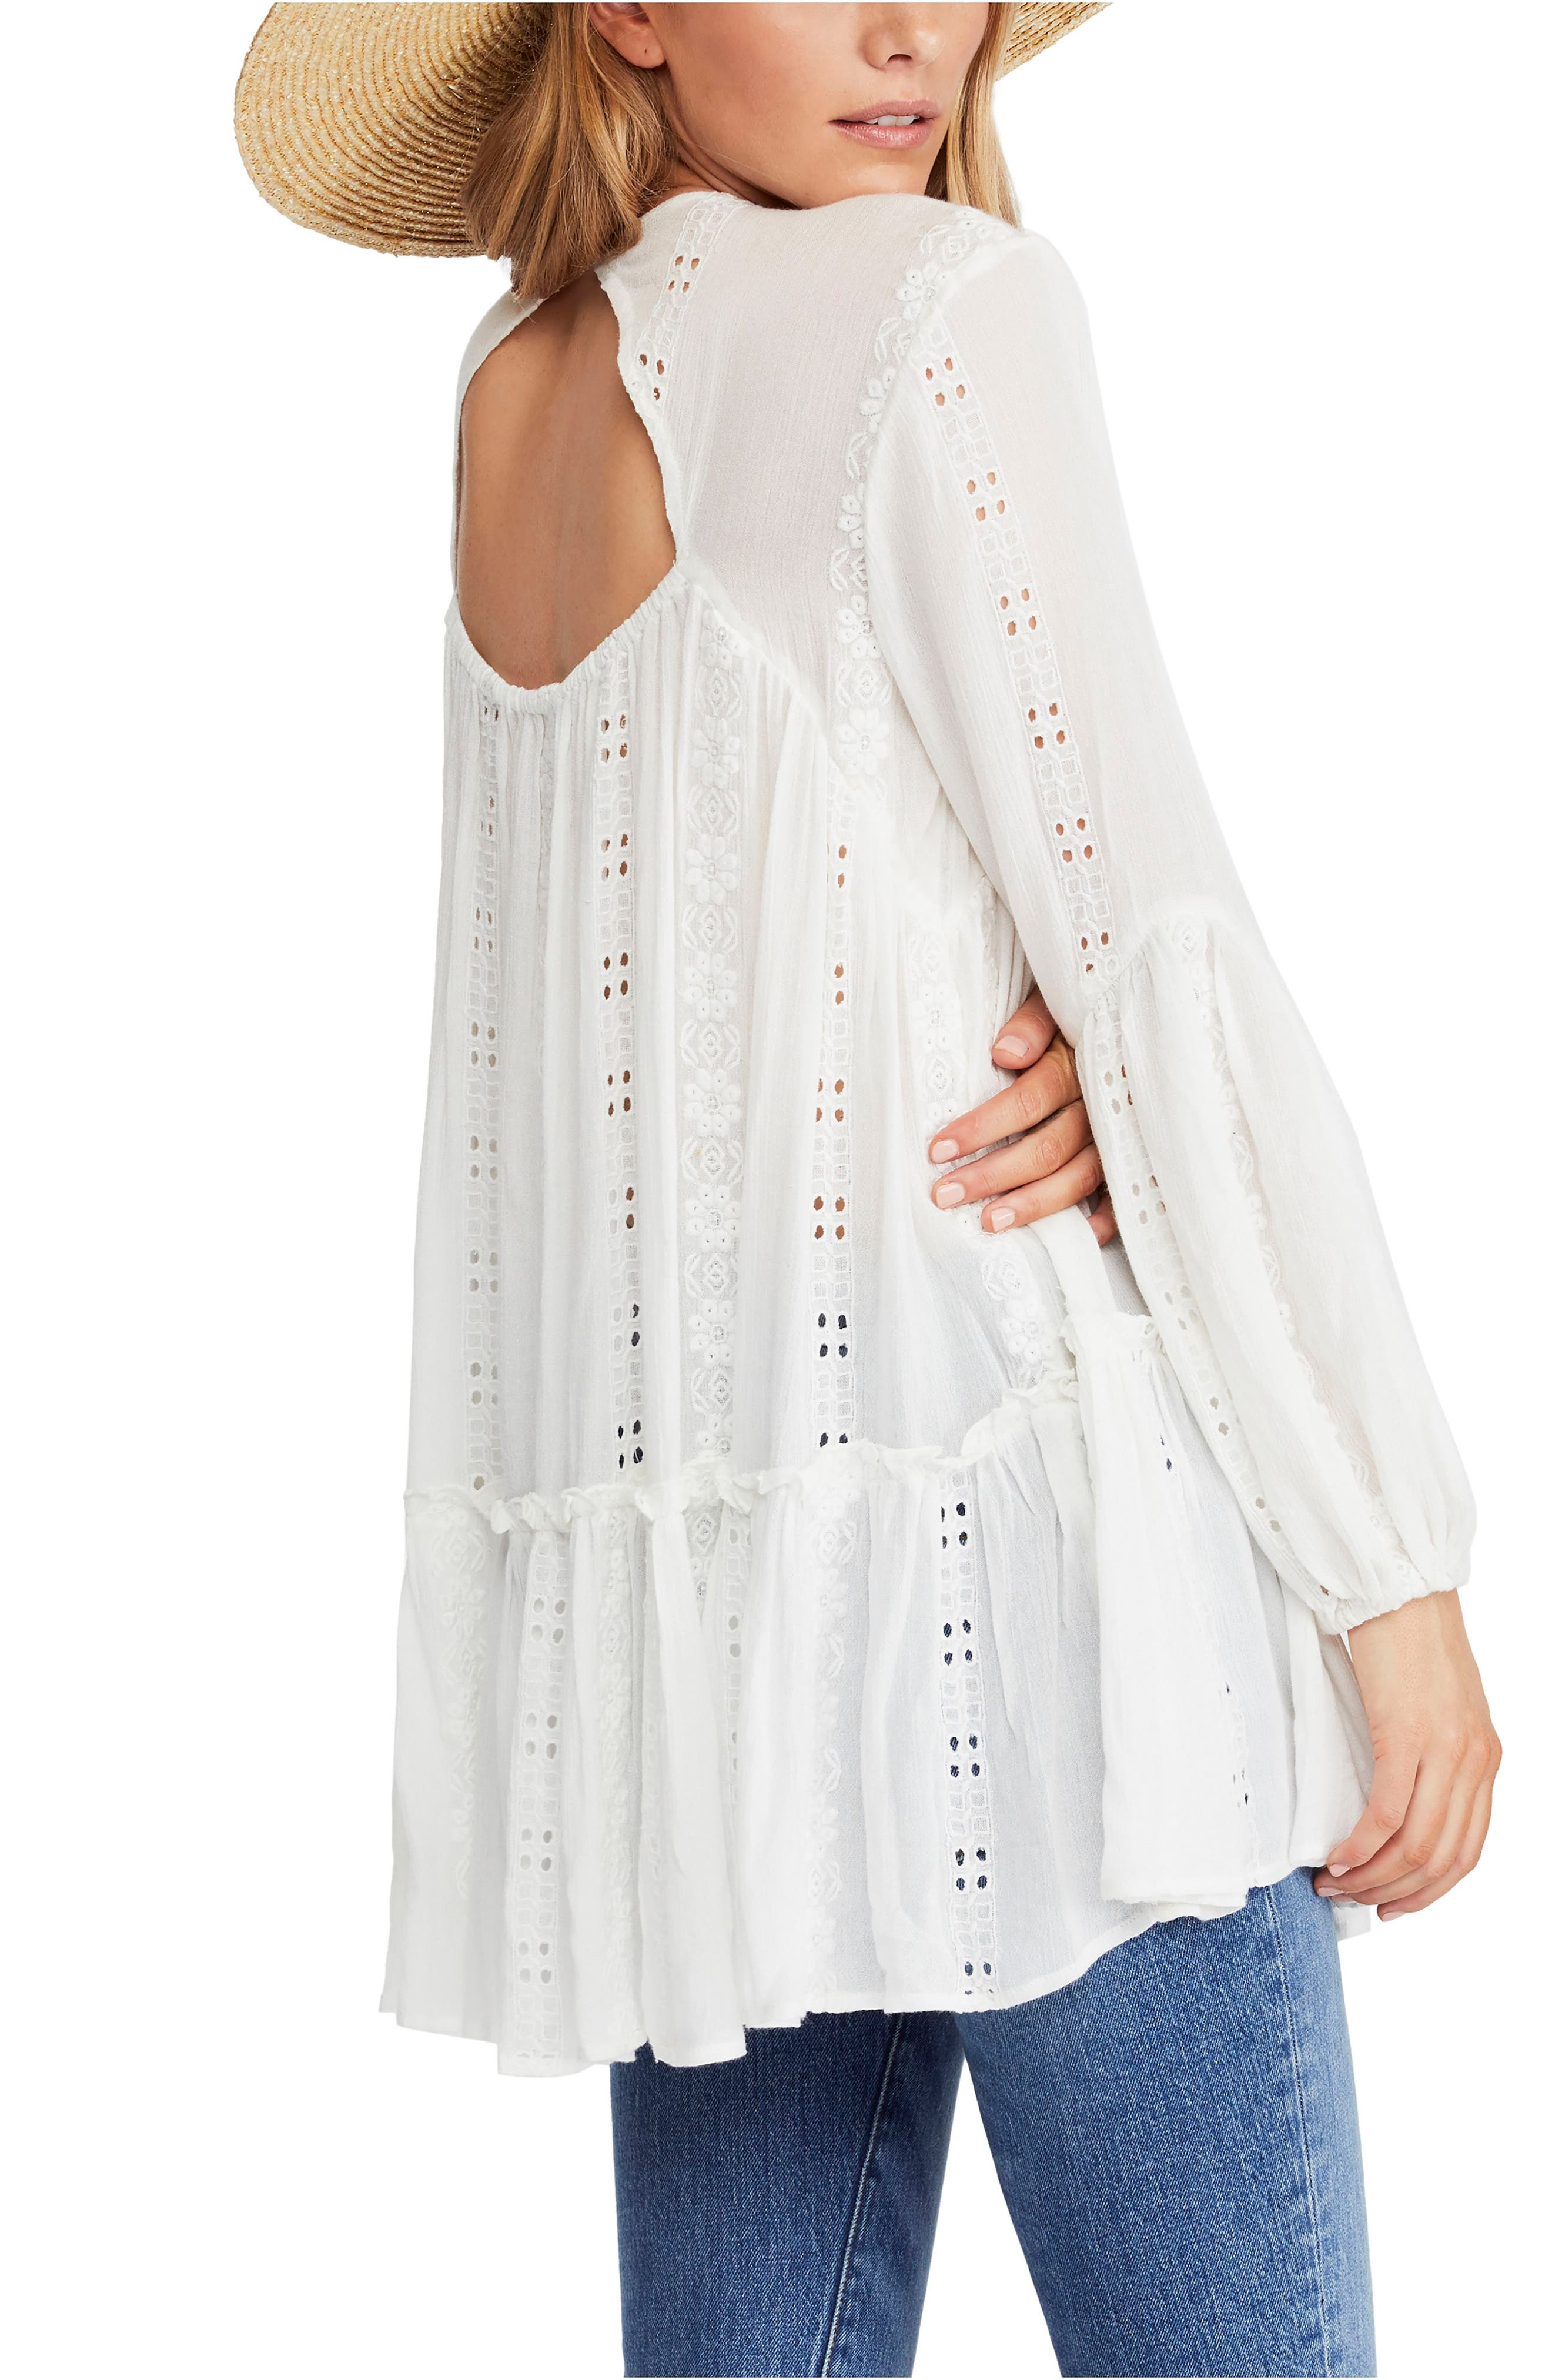 FREE PEOPLE, Kiss Kiss Tunic, Alternate thumbnail 2, color, 103